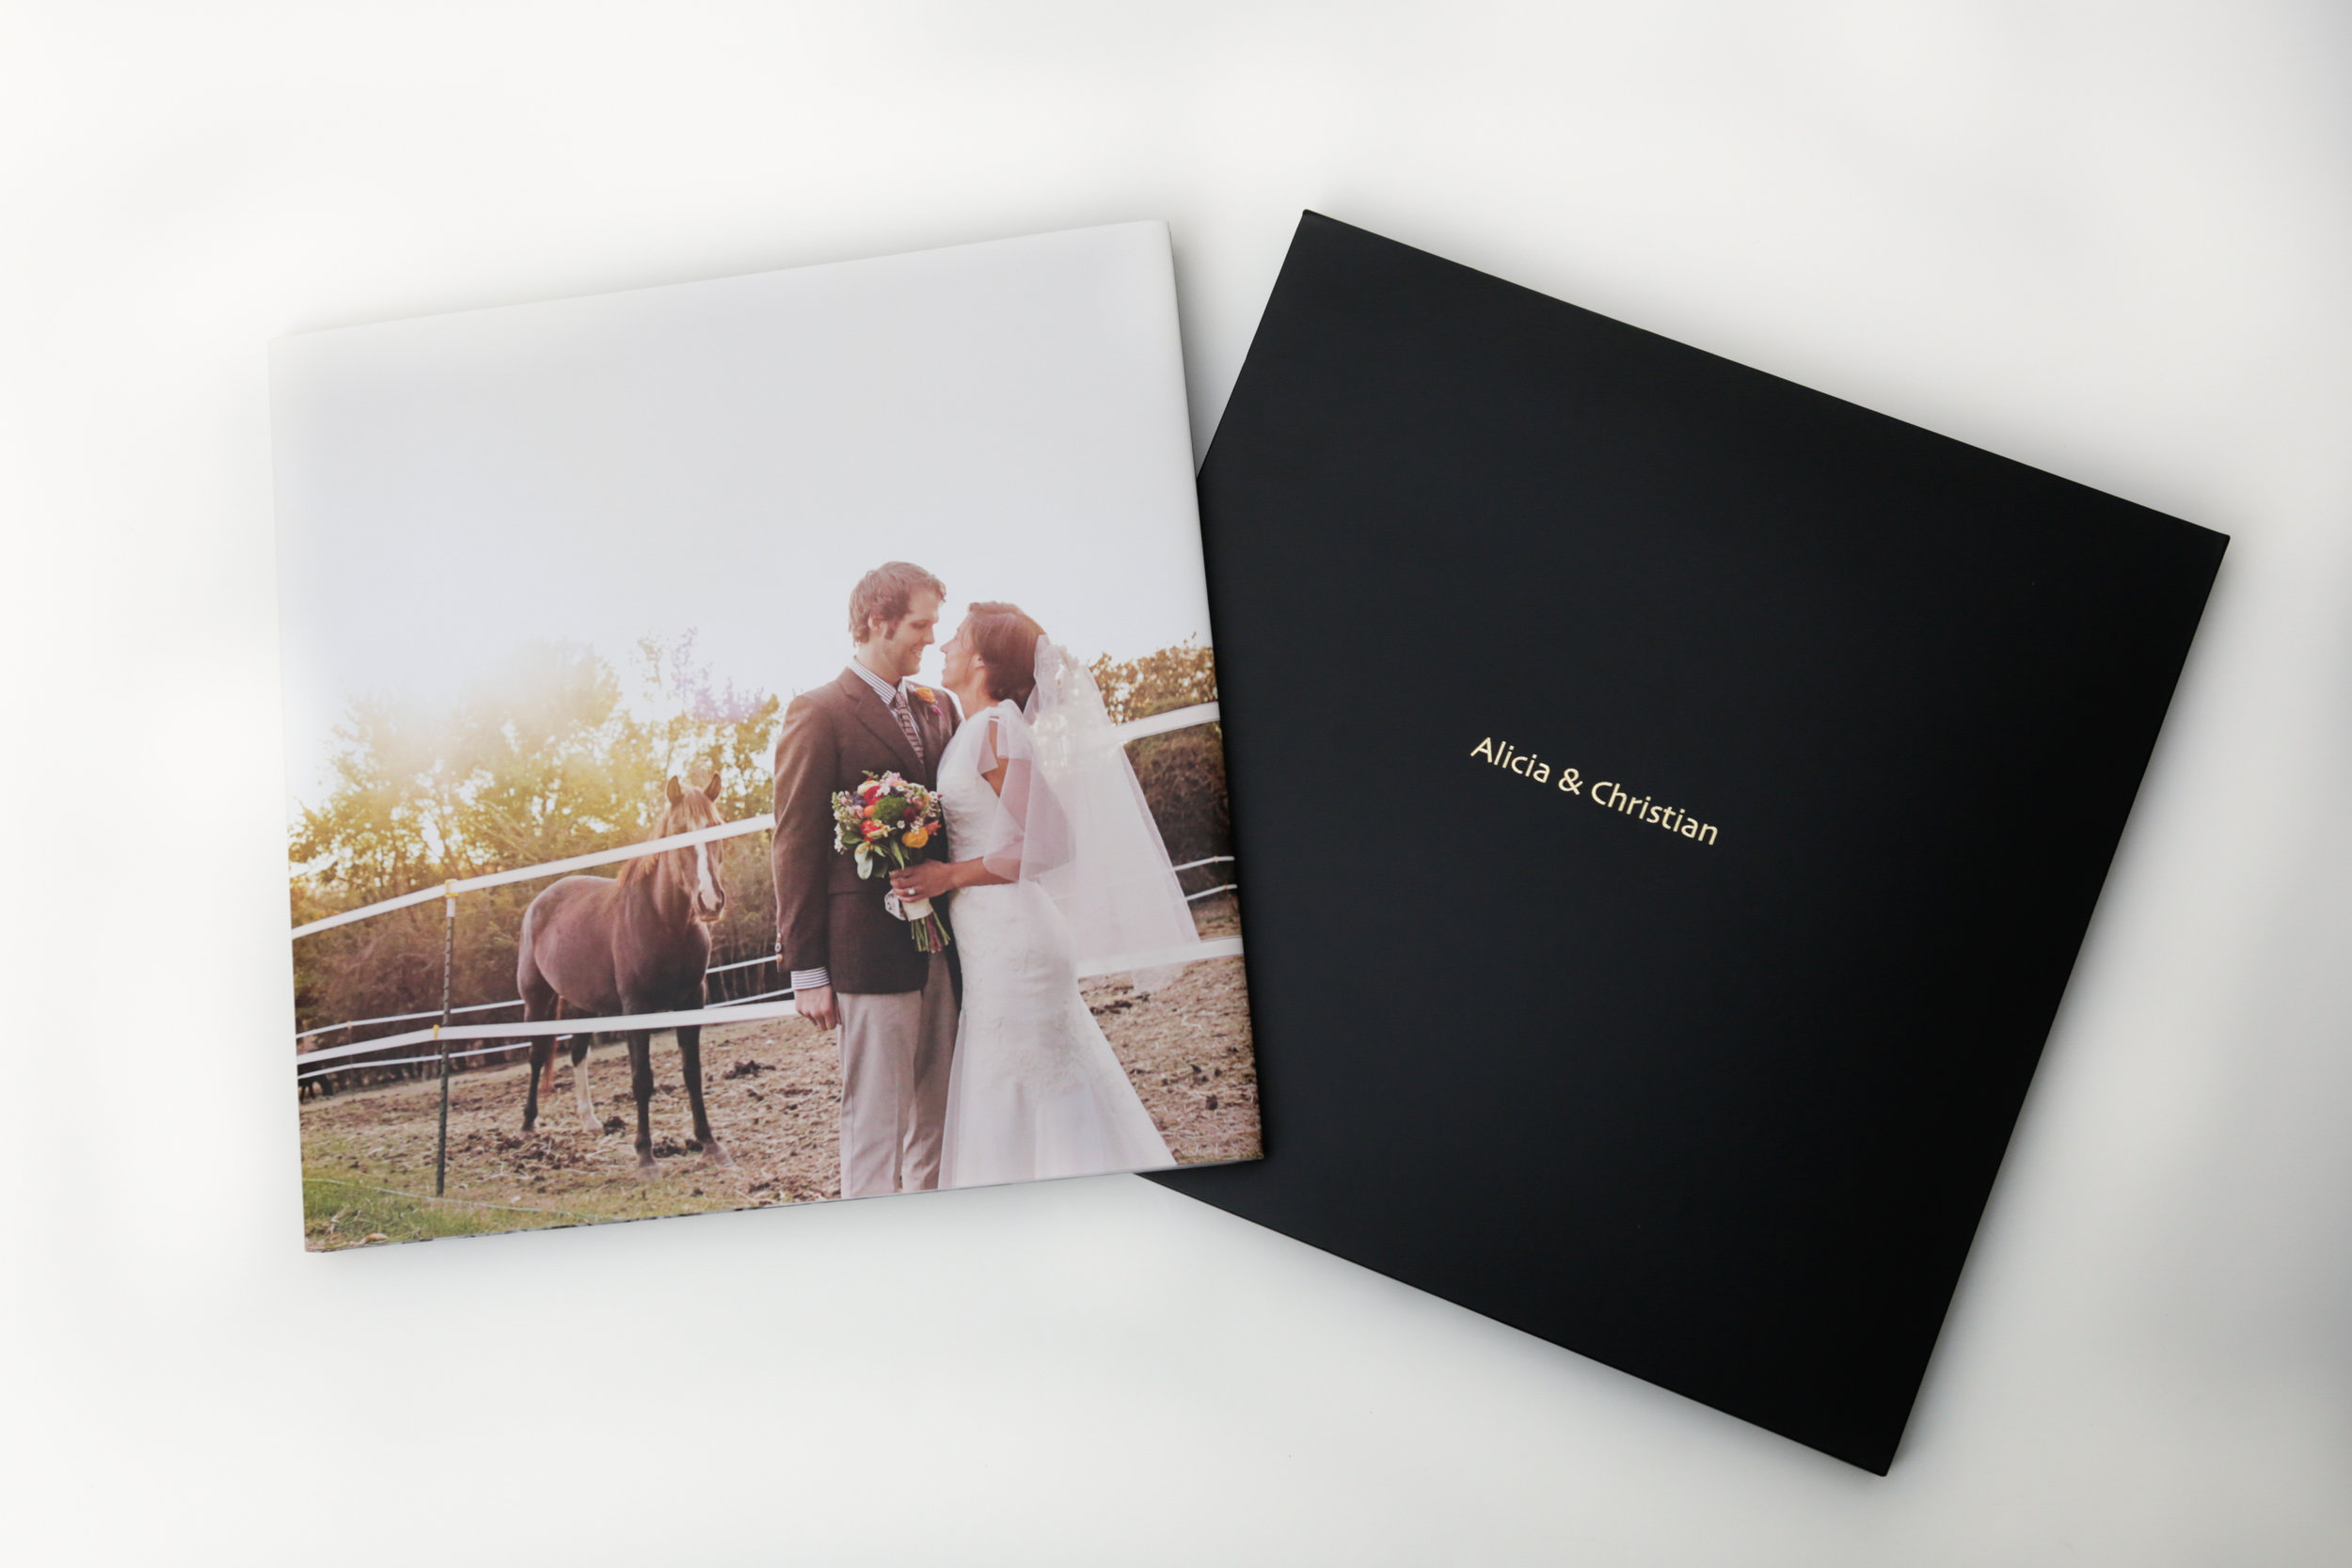 Modern Album     BOOK A FULL WEDDING DAY FOR 2017 AND RECEIVE A 10X10, 30 PAGE, MODERN ALBUM! A DESIGNABLE HARDCOVER PROTECTED BY MATCHING BOOK JACKET WITH DESIGNABLE INSIDE FLAPS. MAGAZINE-STYLE PAGES WITH GUTTERLESS LAYFLAT BOOK BINDING. OPTIONS OF BLACK OR RED SLIDE-IN CASE AND PERSONALIZED HOT STAMP.  FULL PACKAGE involves - Full-day coverage, portal cards for family and friends to view photos online, online proofing site for family and friend ordering, all images on CD or flash drive with special selection, ENGAGEMENT SESSION INCLUDED  $3,000!  WEDDING DAY NOT UNTIL 2018? THAT'S OKAY! IF YOU BOOK DURING 2017, YOU STILL QUALIFY!